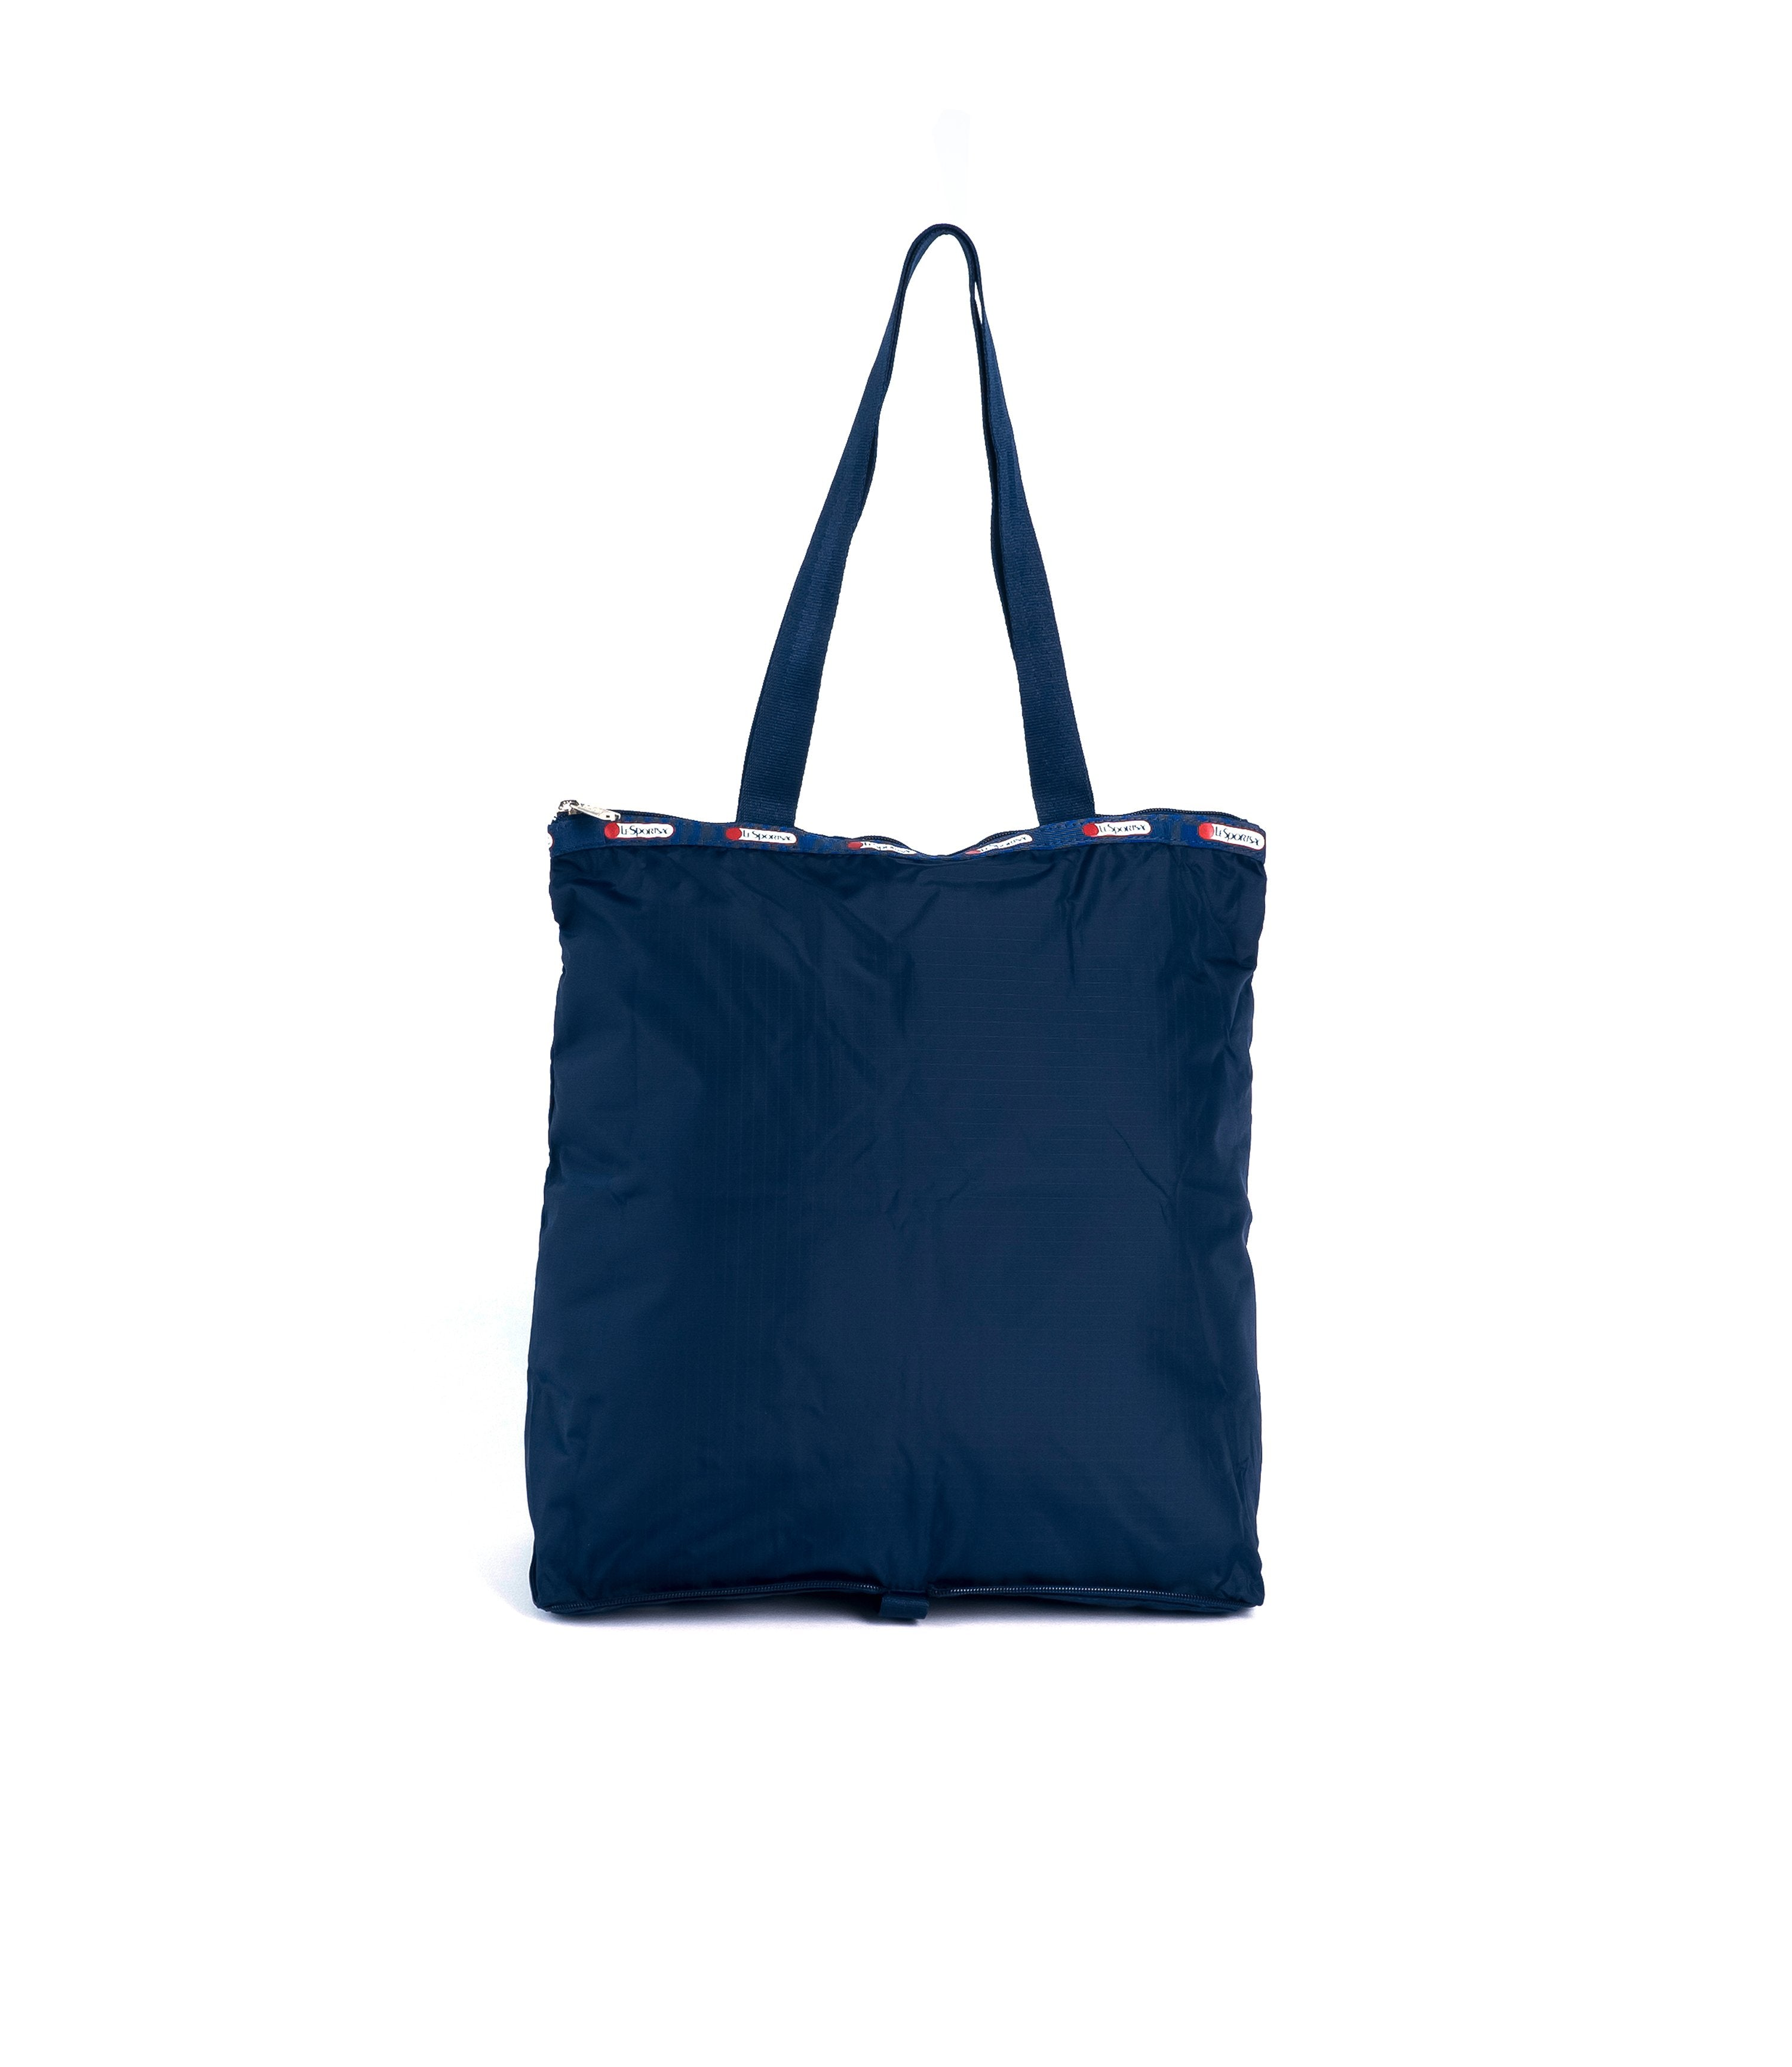 LeSportsac - Travel Packable Tote - Totes - Heritage Cobalt